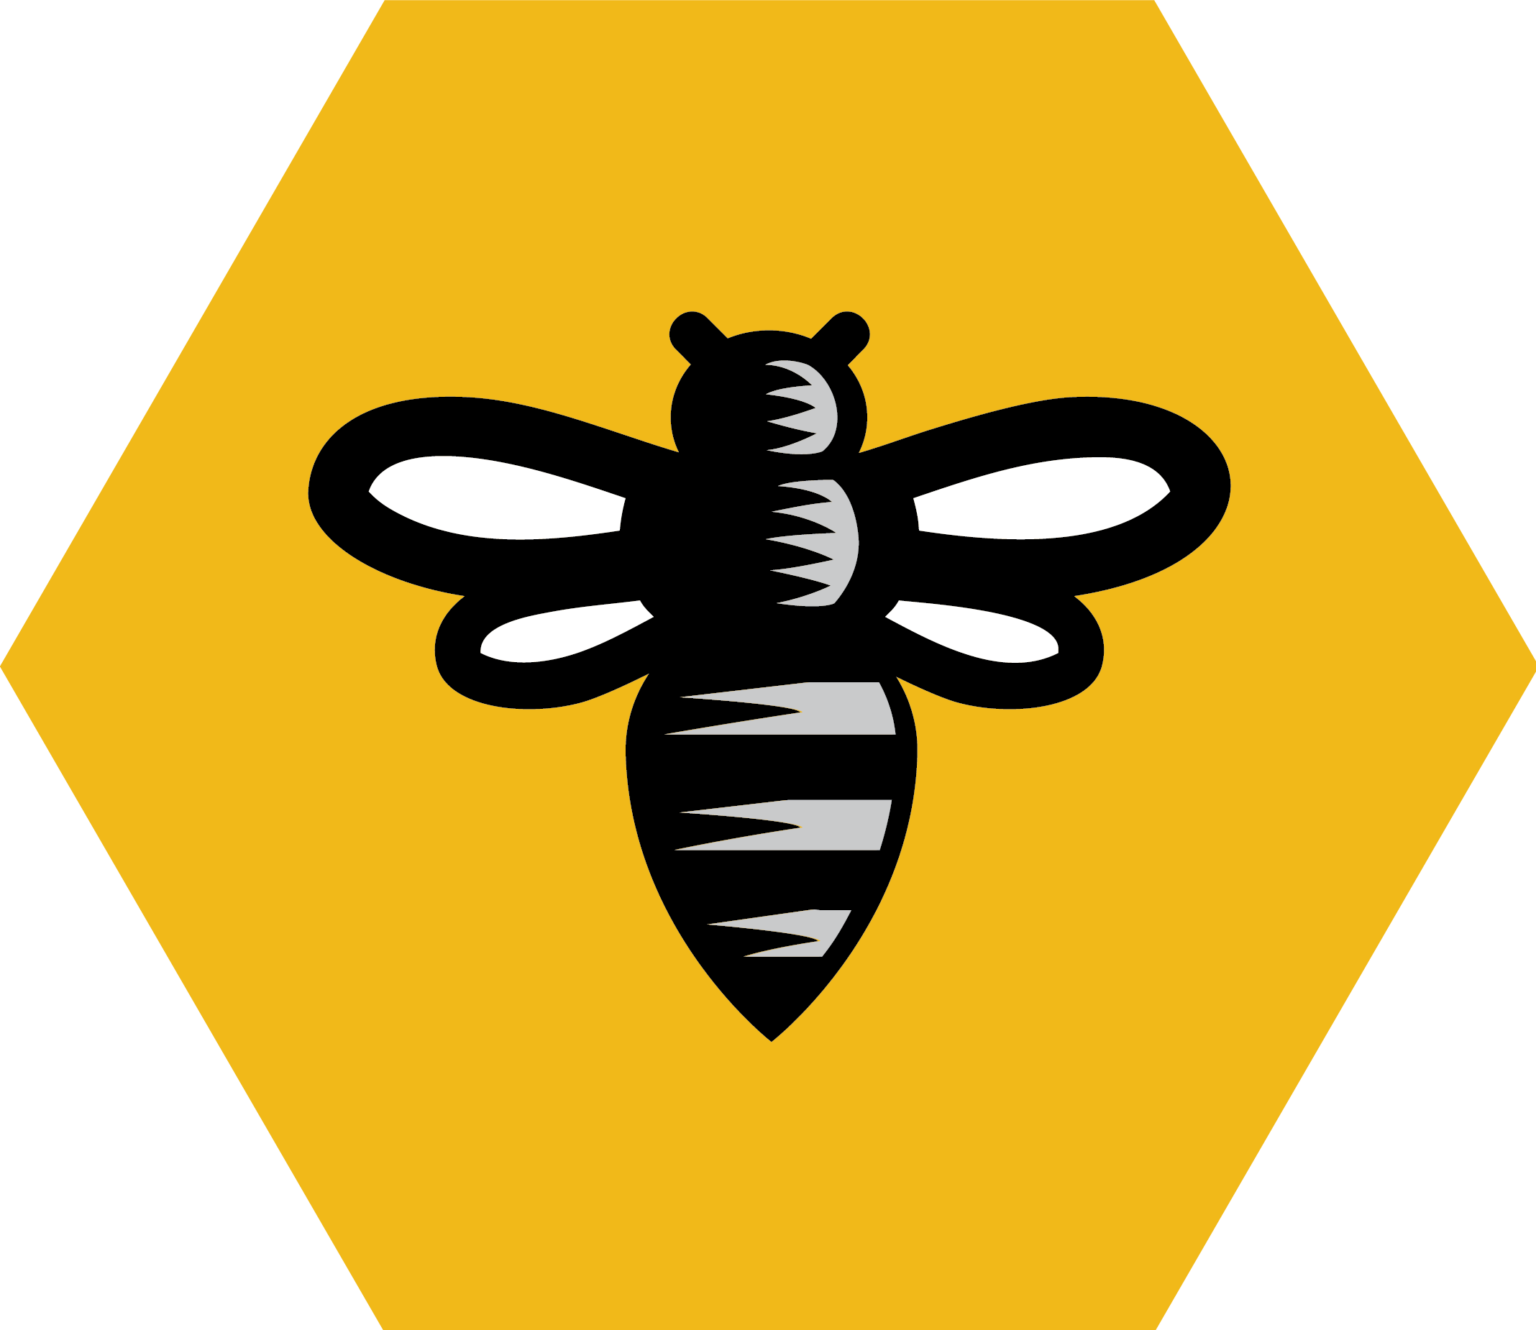 https://www.savethebee.org/wp-content/uploads/2021/08/bee-icon-1536x1330.png